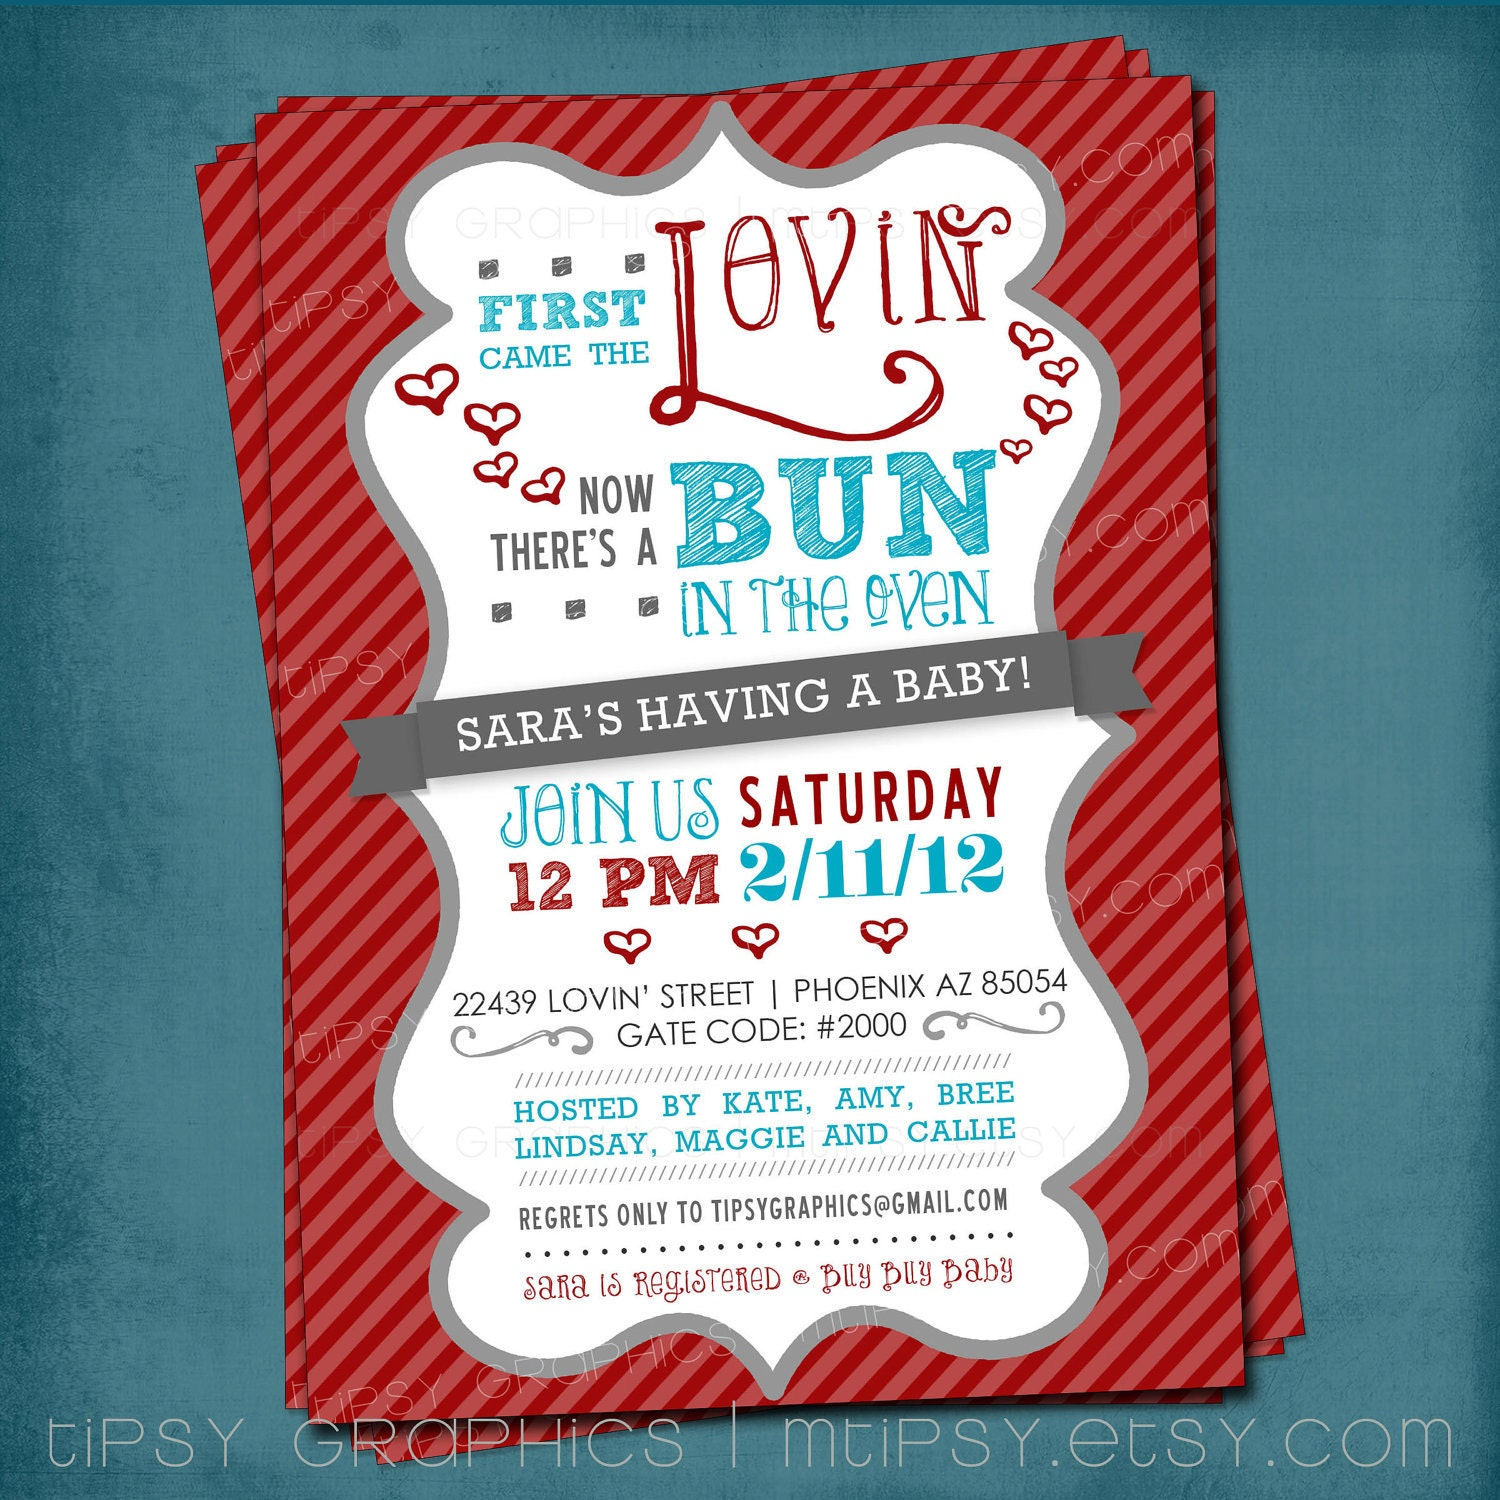 first came the lovin bun in the oven baby shower invite by mtipsy